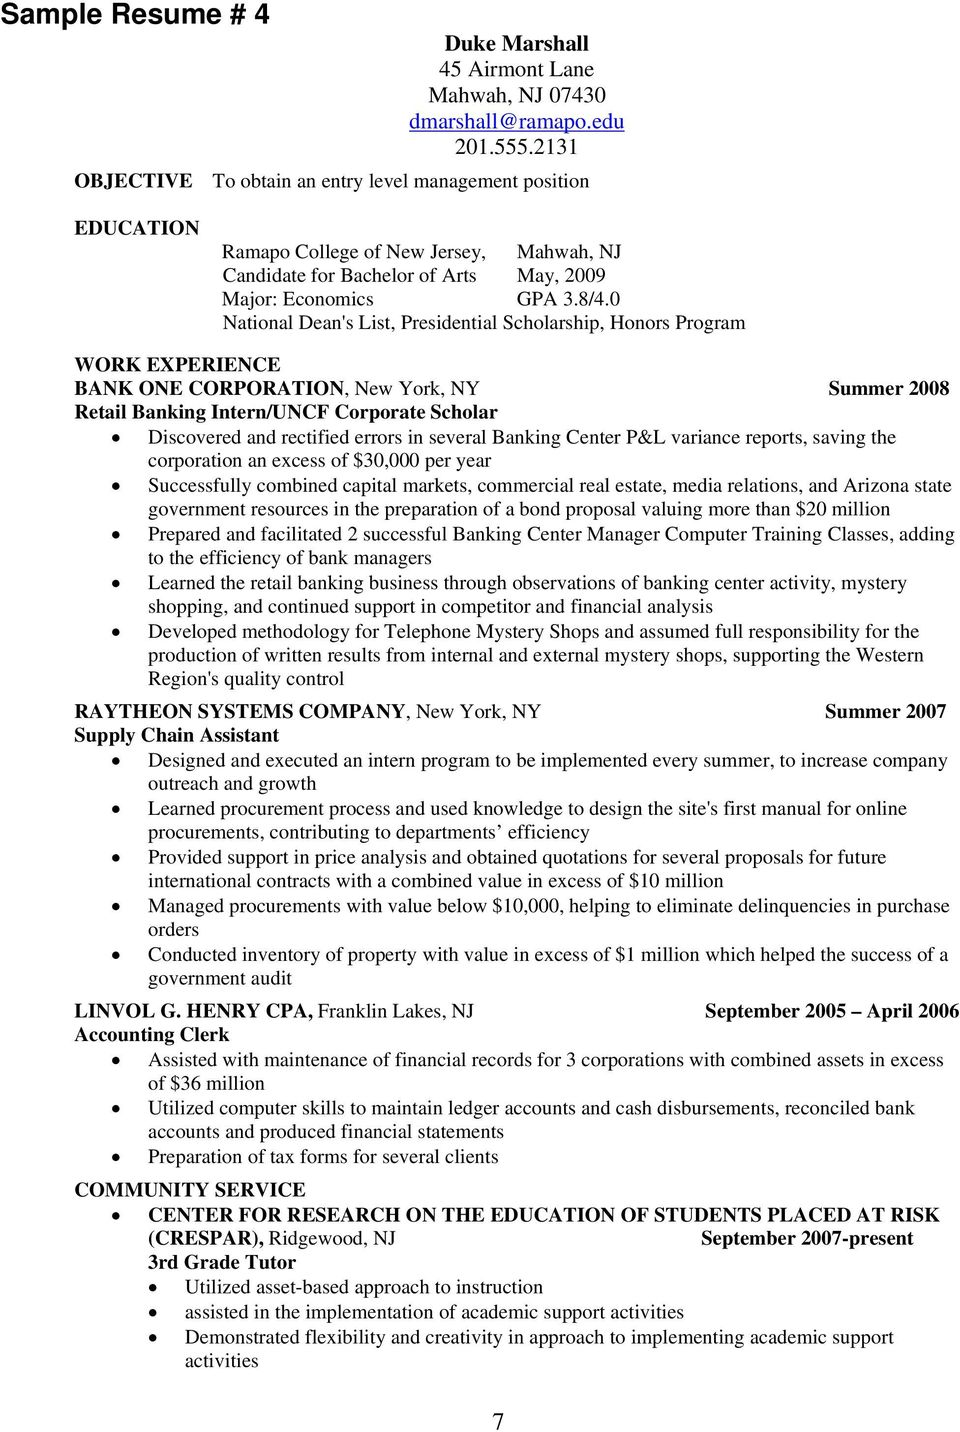 0 National Dean's List, Presidential Scholarship, Honors Program WORK EXPERIENCE BANK ONE CORPORATION, New York, NY Summer 2008 Retail Banking Intern/UNCF Corporate Scholar Discovered and rectified